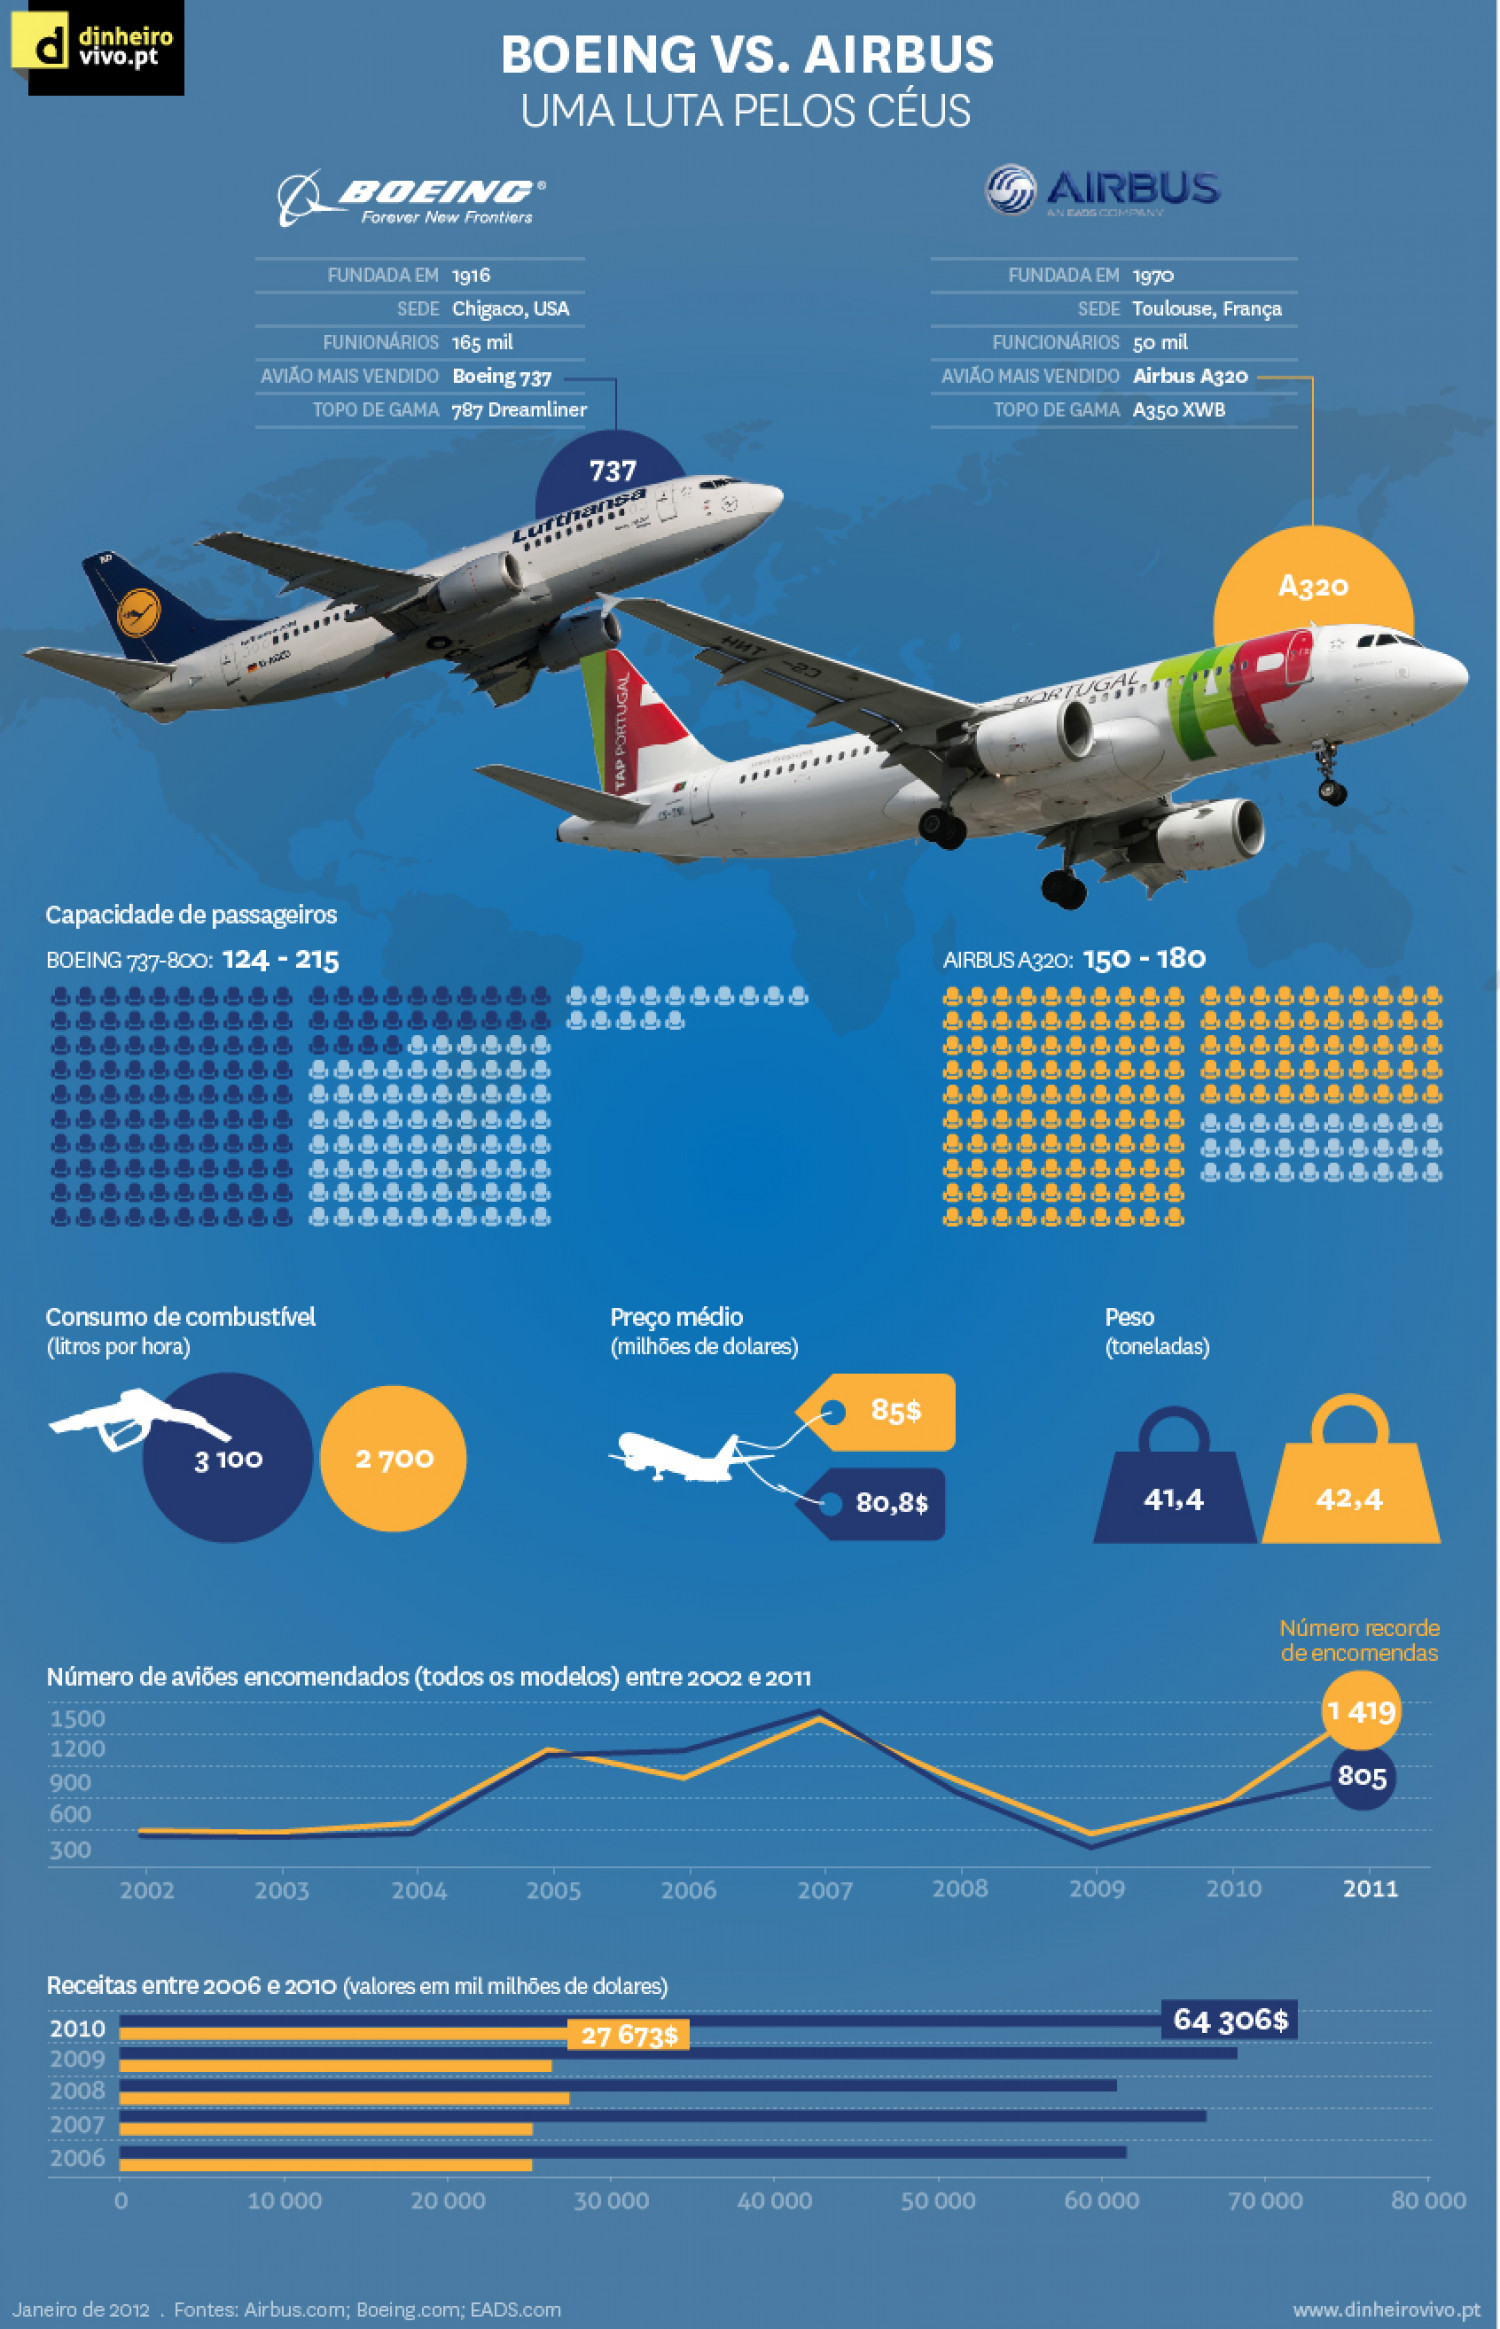 airbus v boeing Airbus has claimed to have edged ahead in its battle with rival boeing last year as it won orders for more than 1,000 new planes, although boeing made and delivered more aircraft the aircraft .